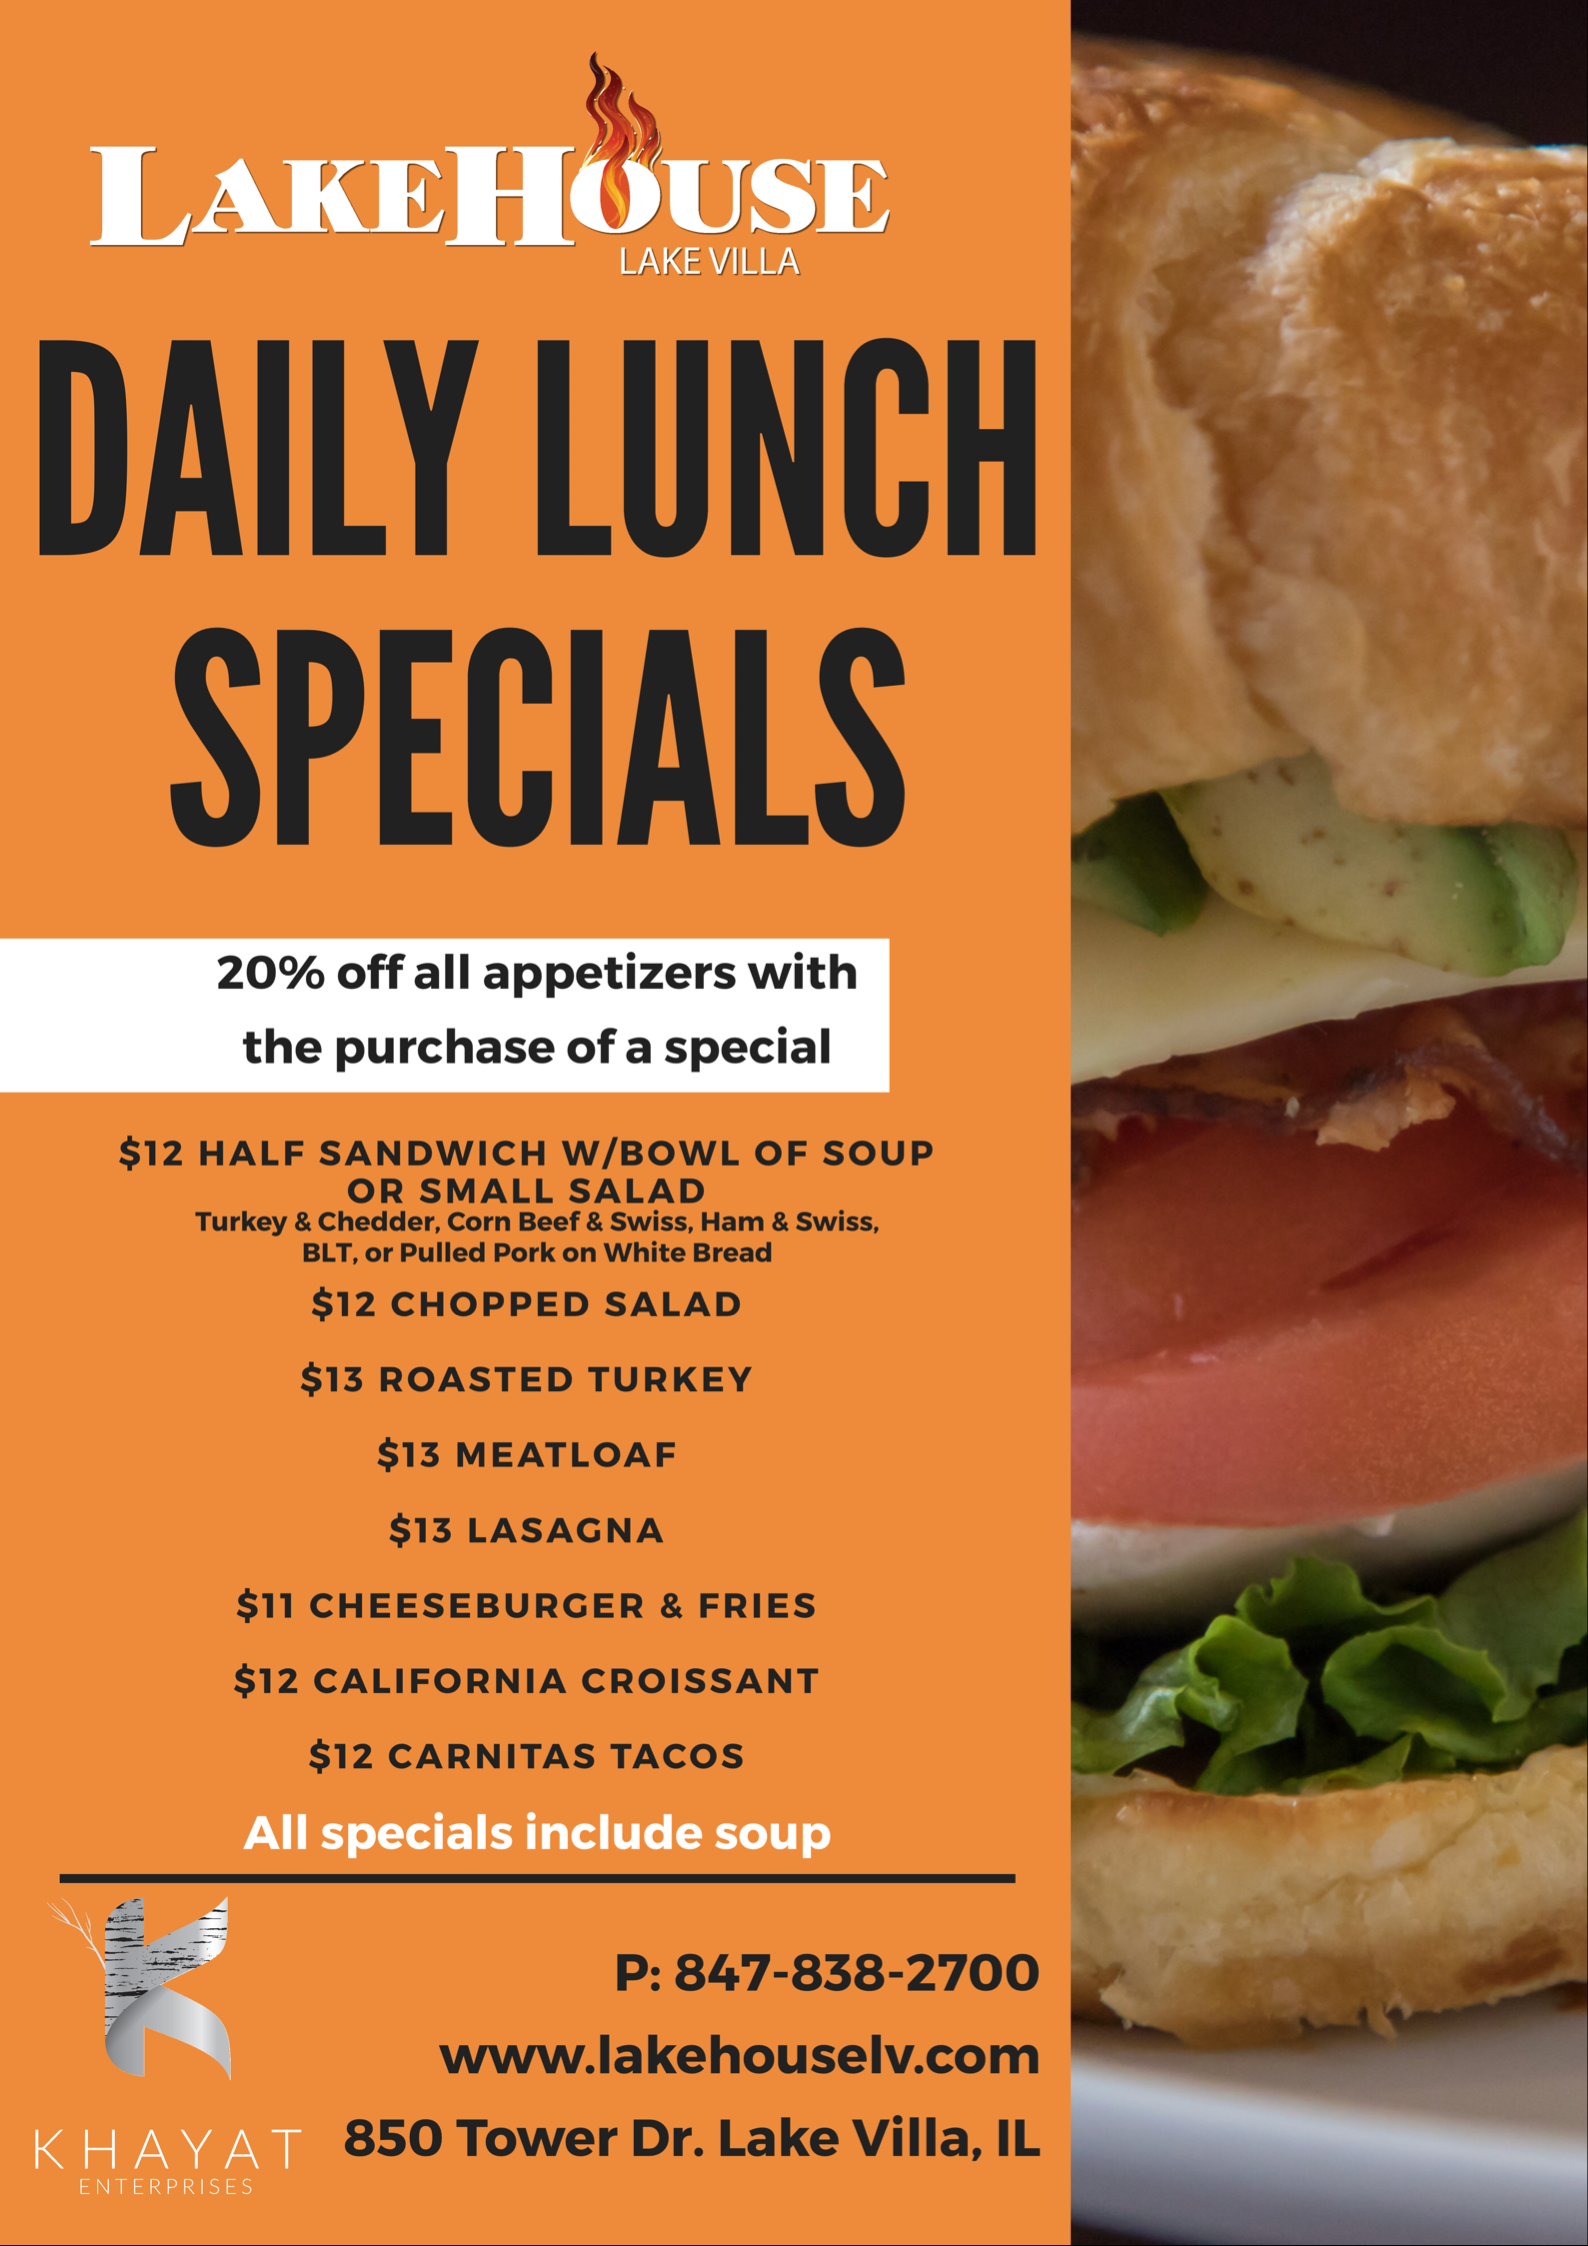 Daily Lunch Specials for LakeHouse- Lake Villa